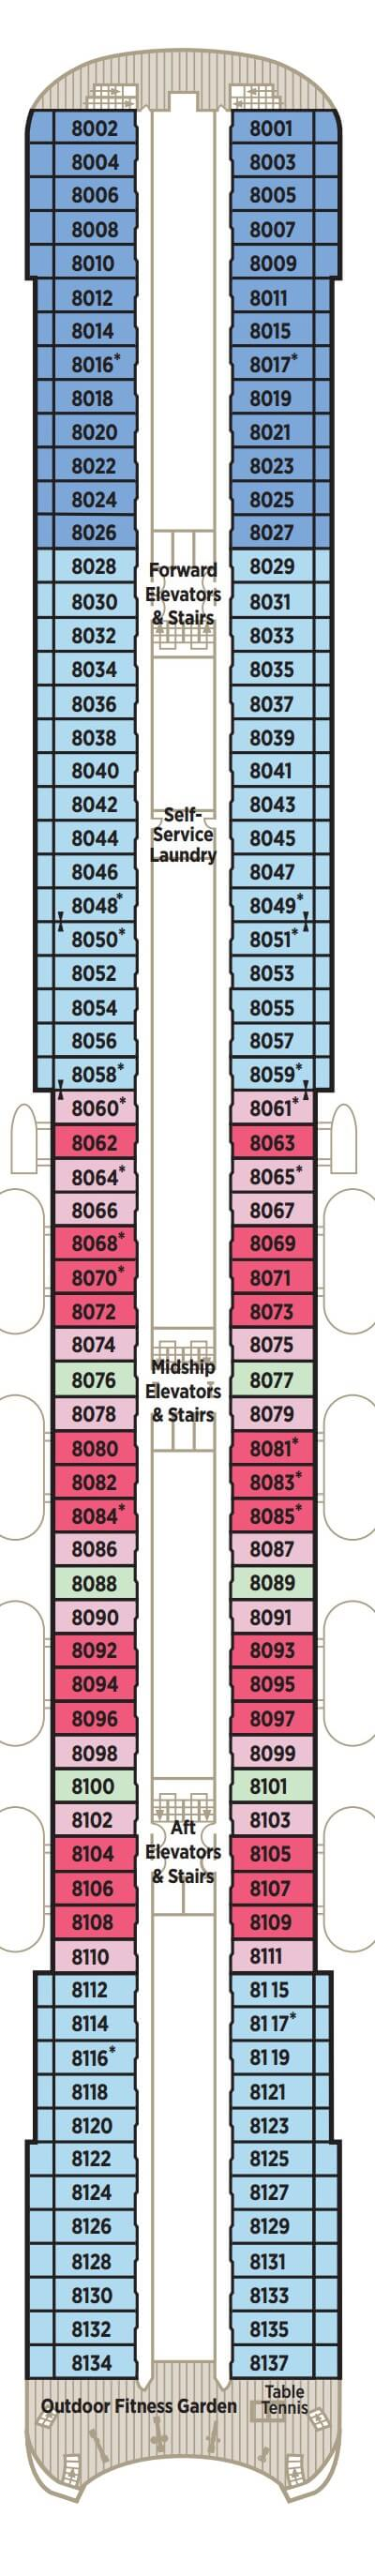 Crystal Symphony Deck 8 Horizon layout